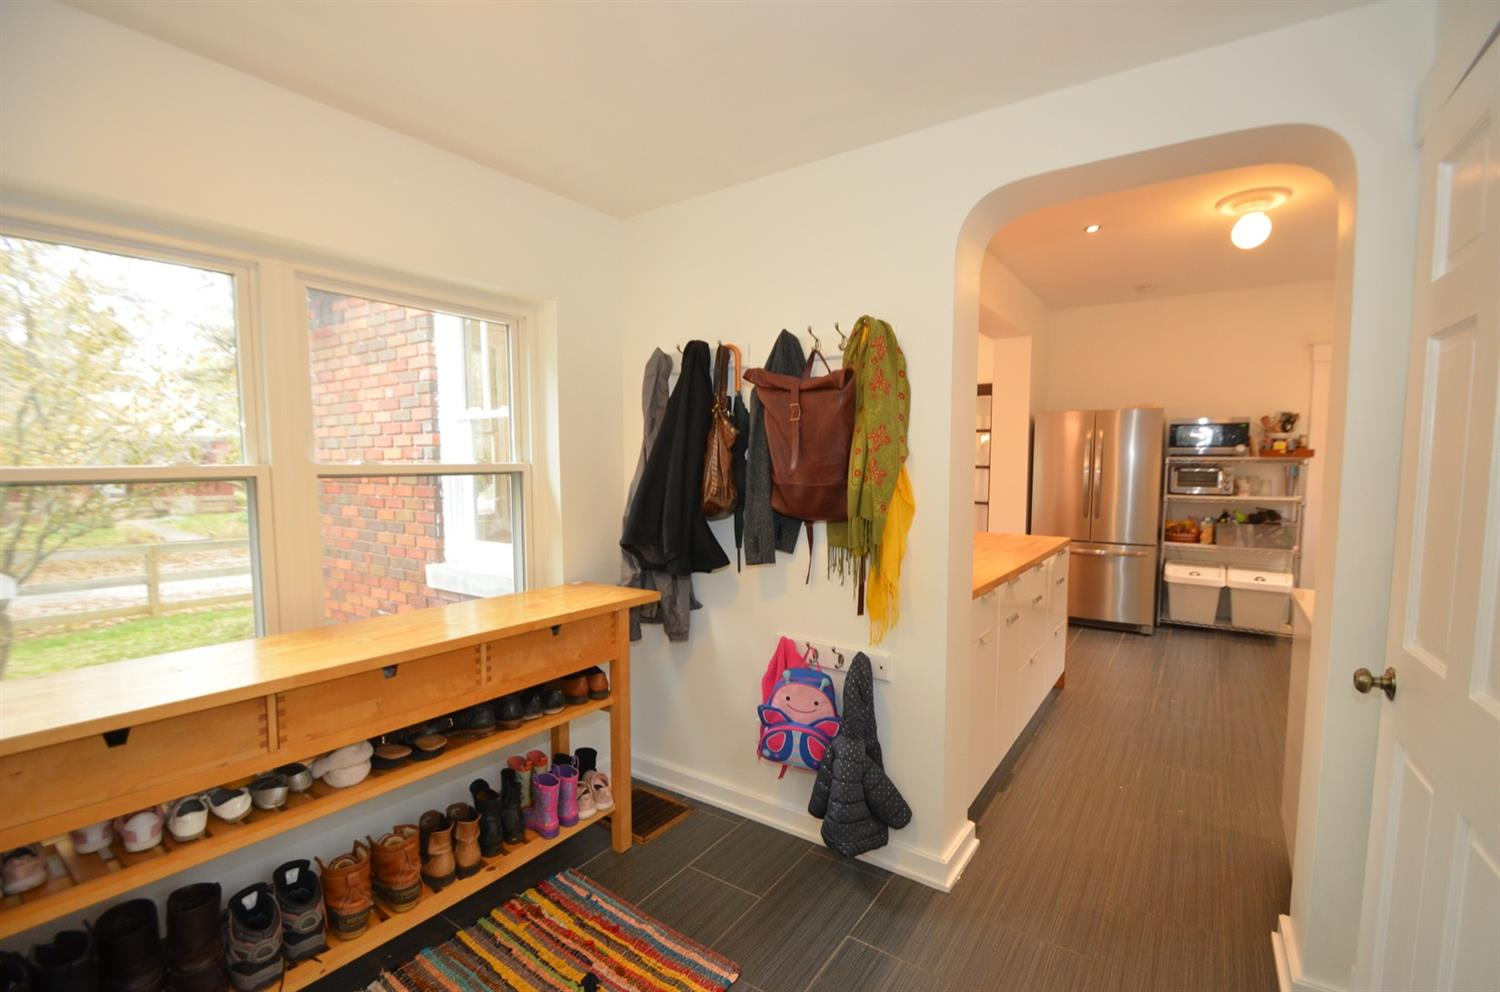 Another view of the mudroom and proximity to the kitchen. Nice!